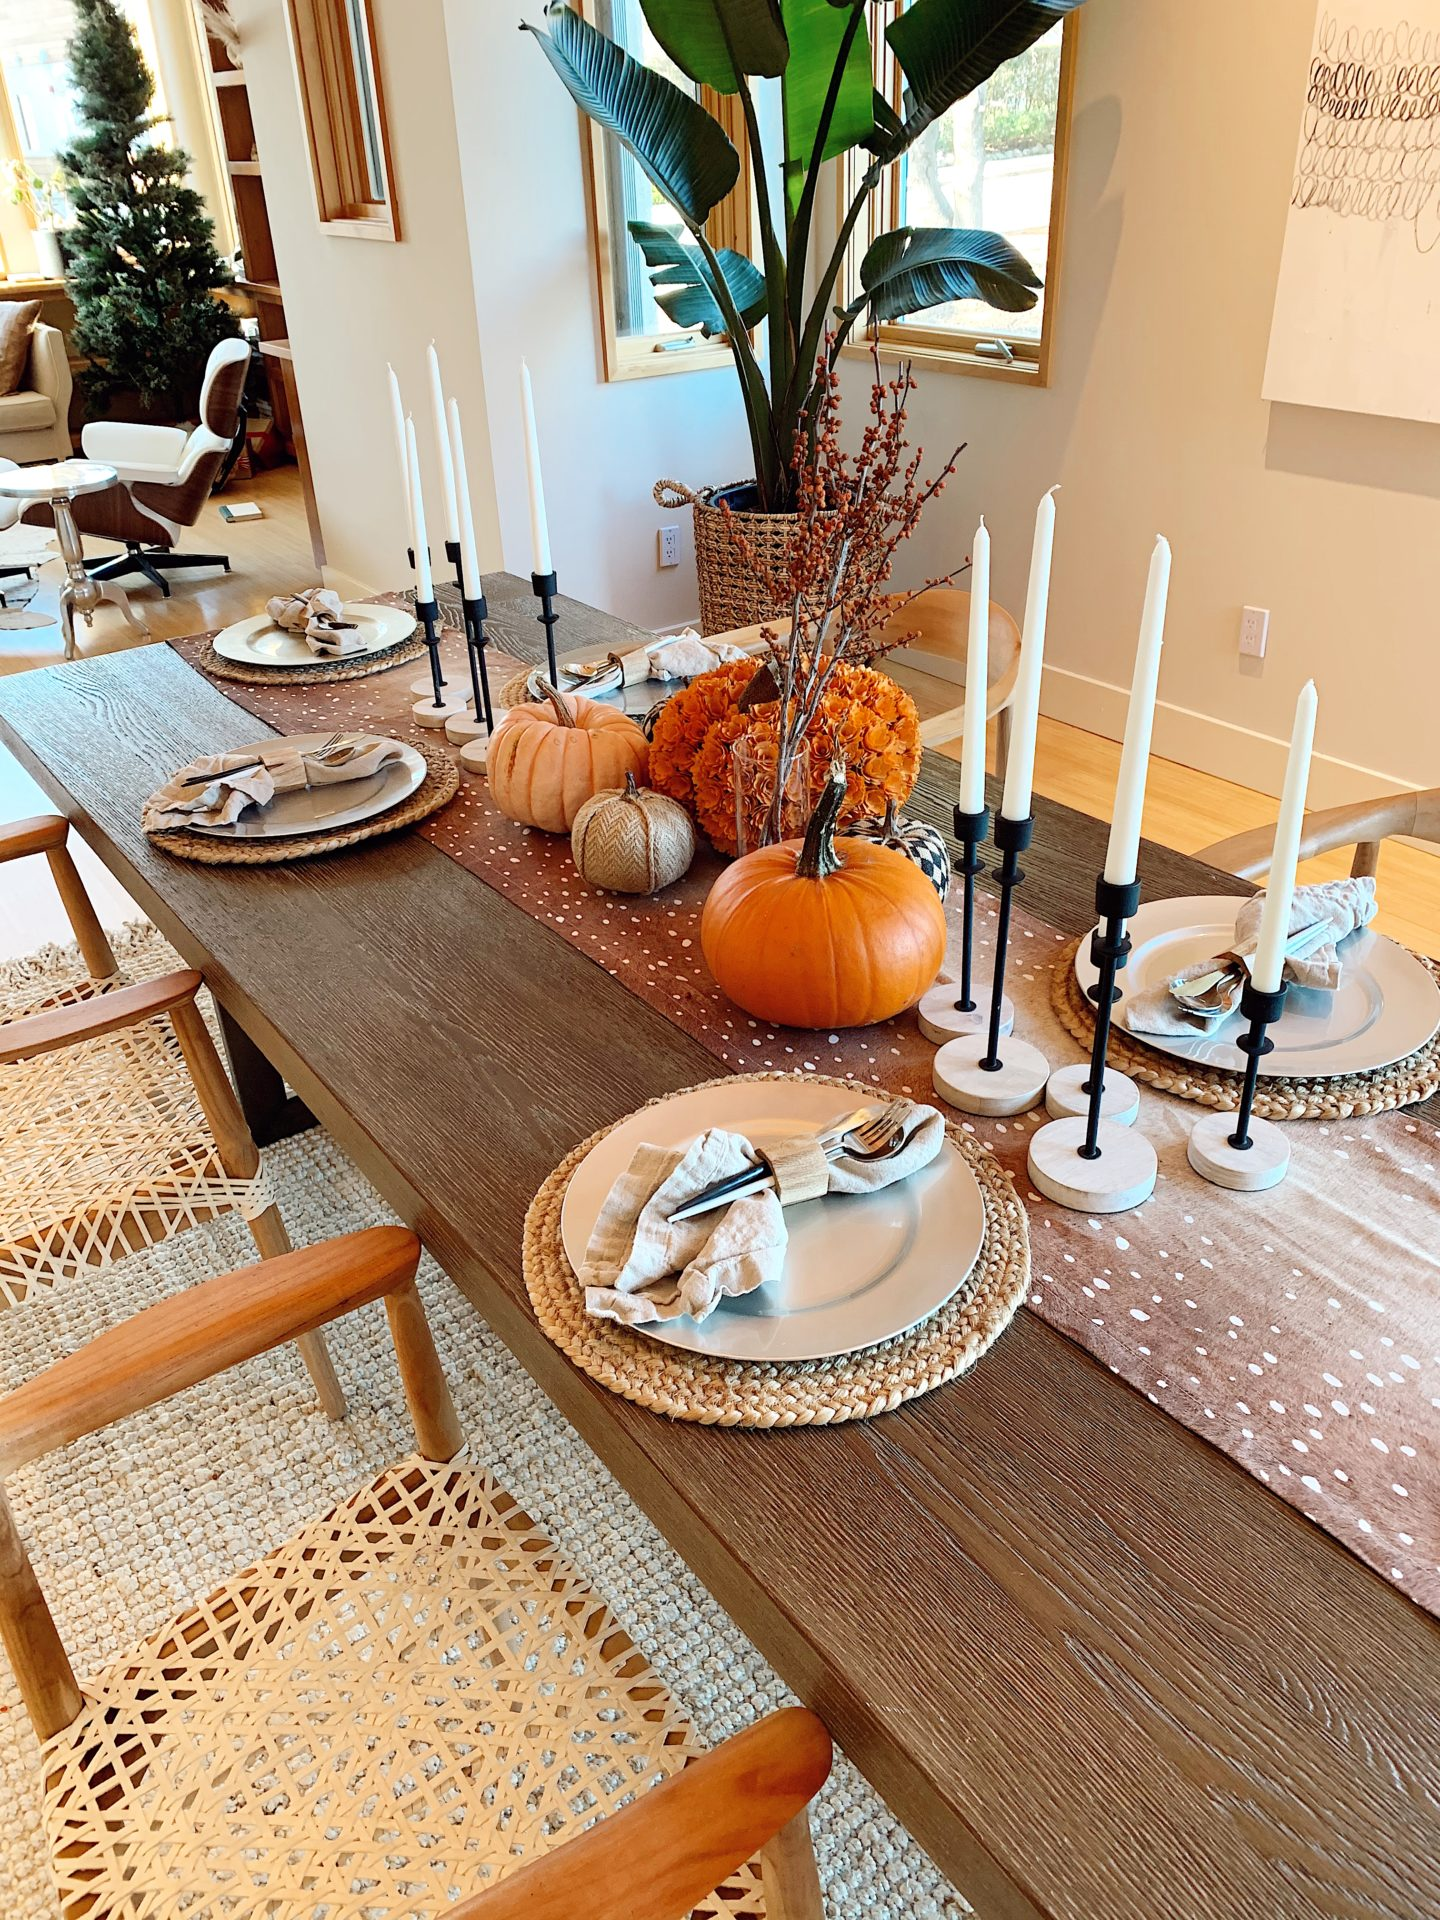 thanksgiving fall tablescape |Fall Tablescape by popular San Francisco life and style blog, Just Add Glam: image of a table decorated with an antelope print table runner, pumpkins, woven grass chargers, black candlestick holders, white candlesticks, cloth napkins with wooden napkin rings, and glass plates.